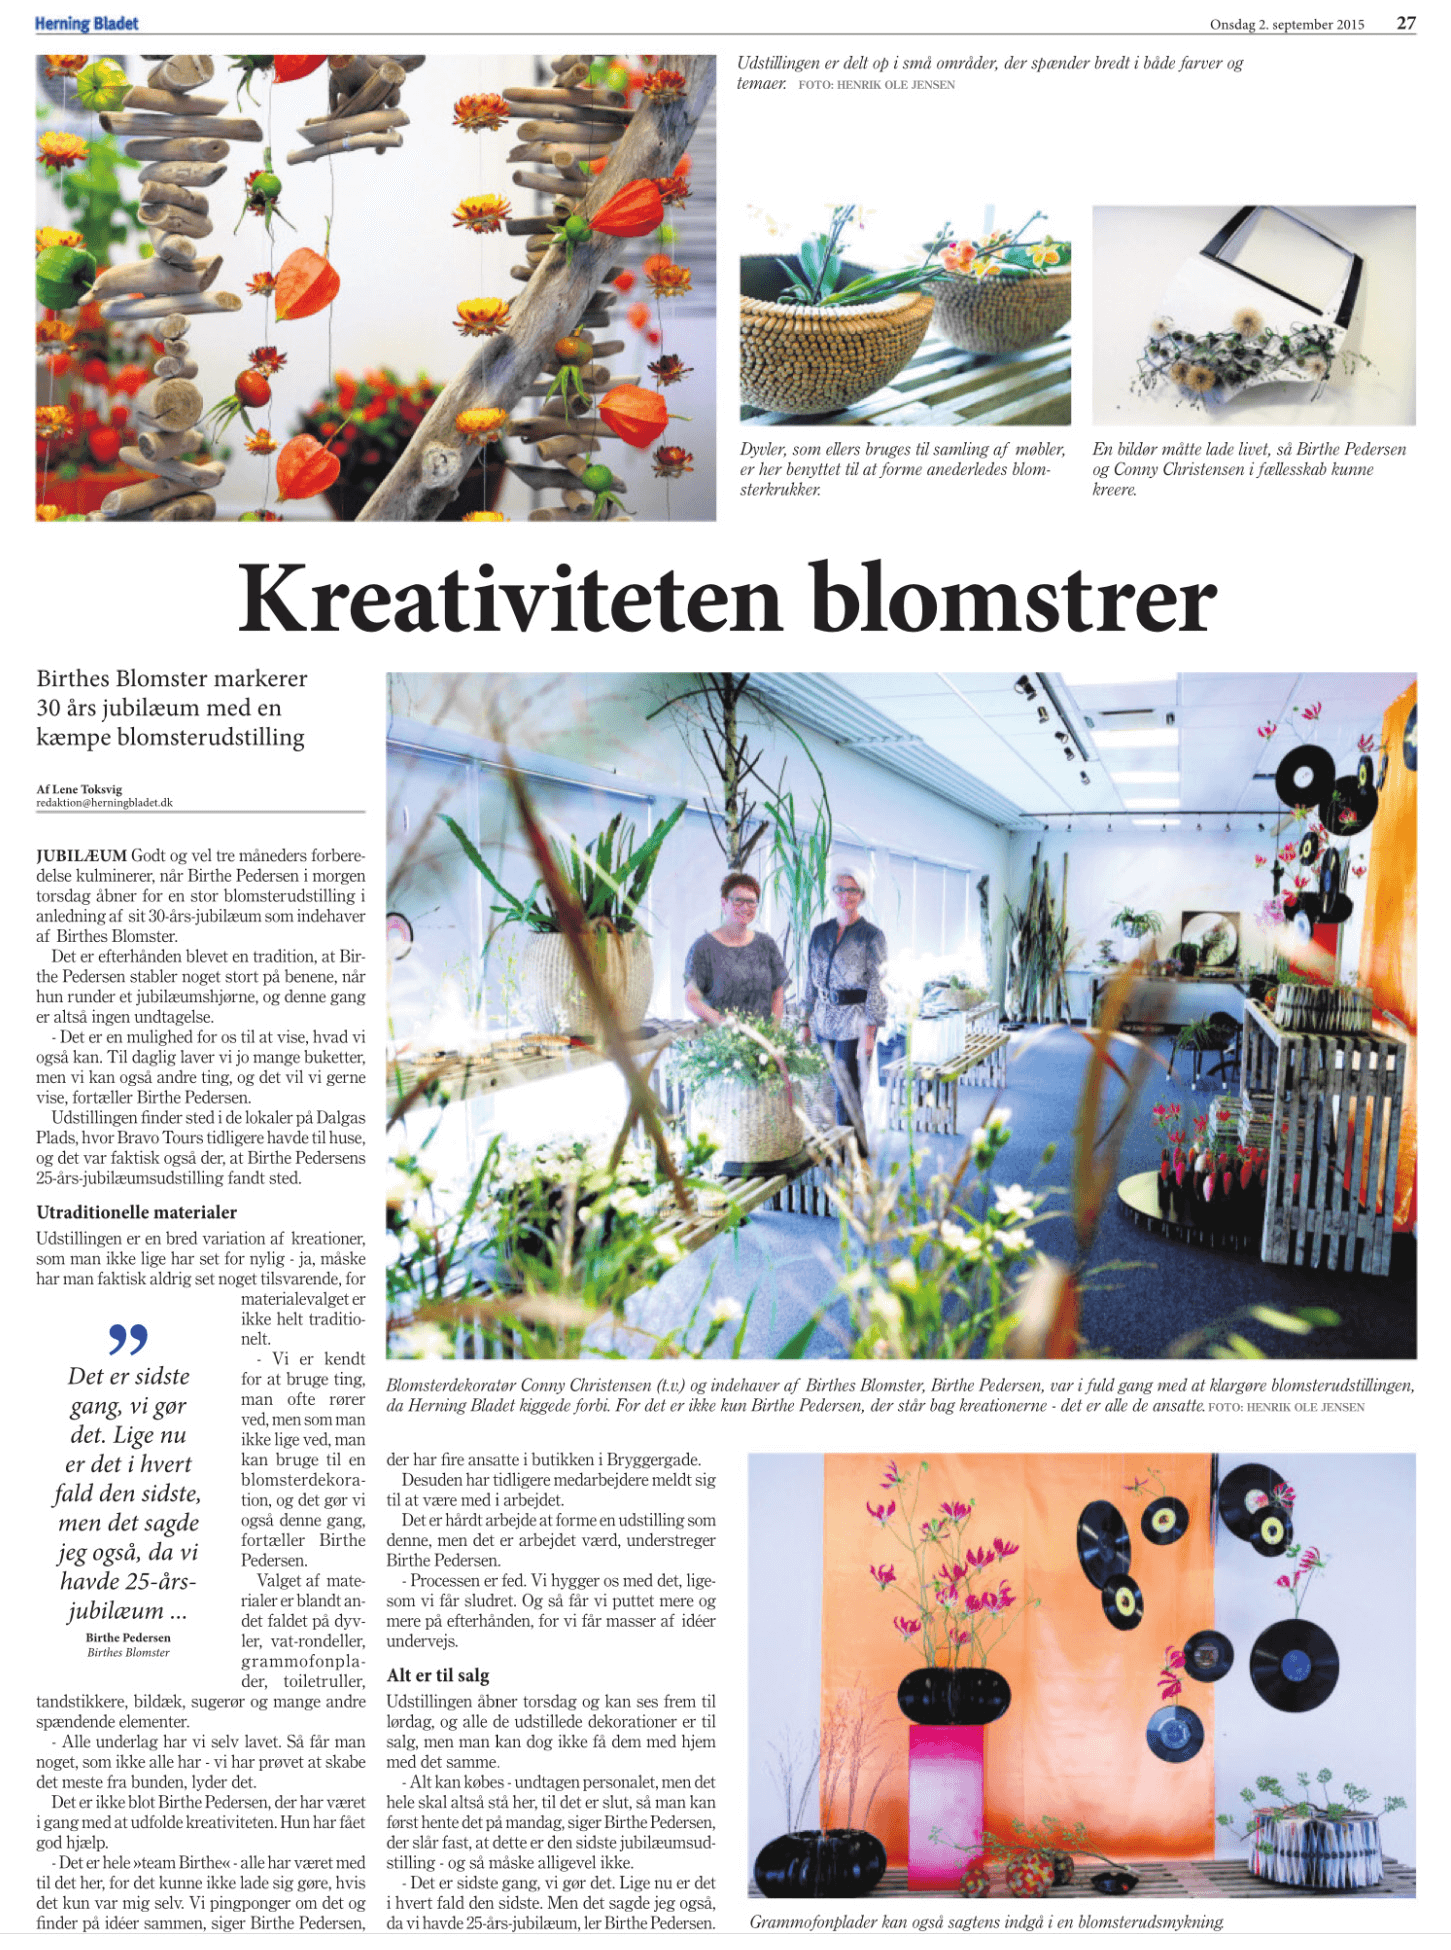 Kreativiteten | Birthes Blomster